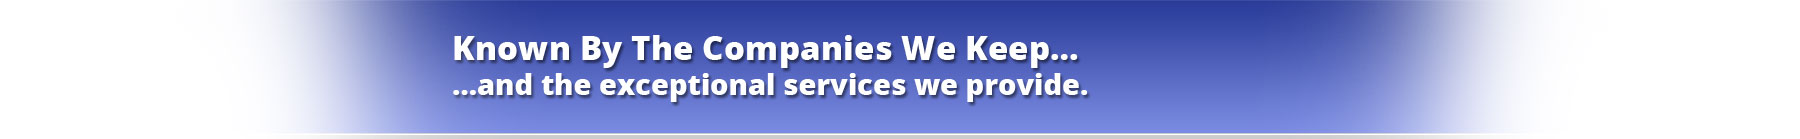 Known By The Companies We Keep…and the exceptional services we provide.